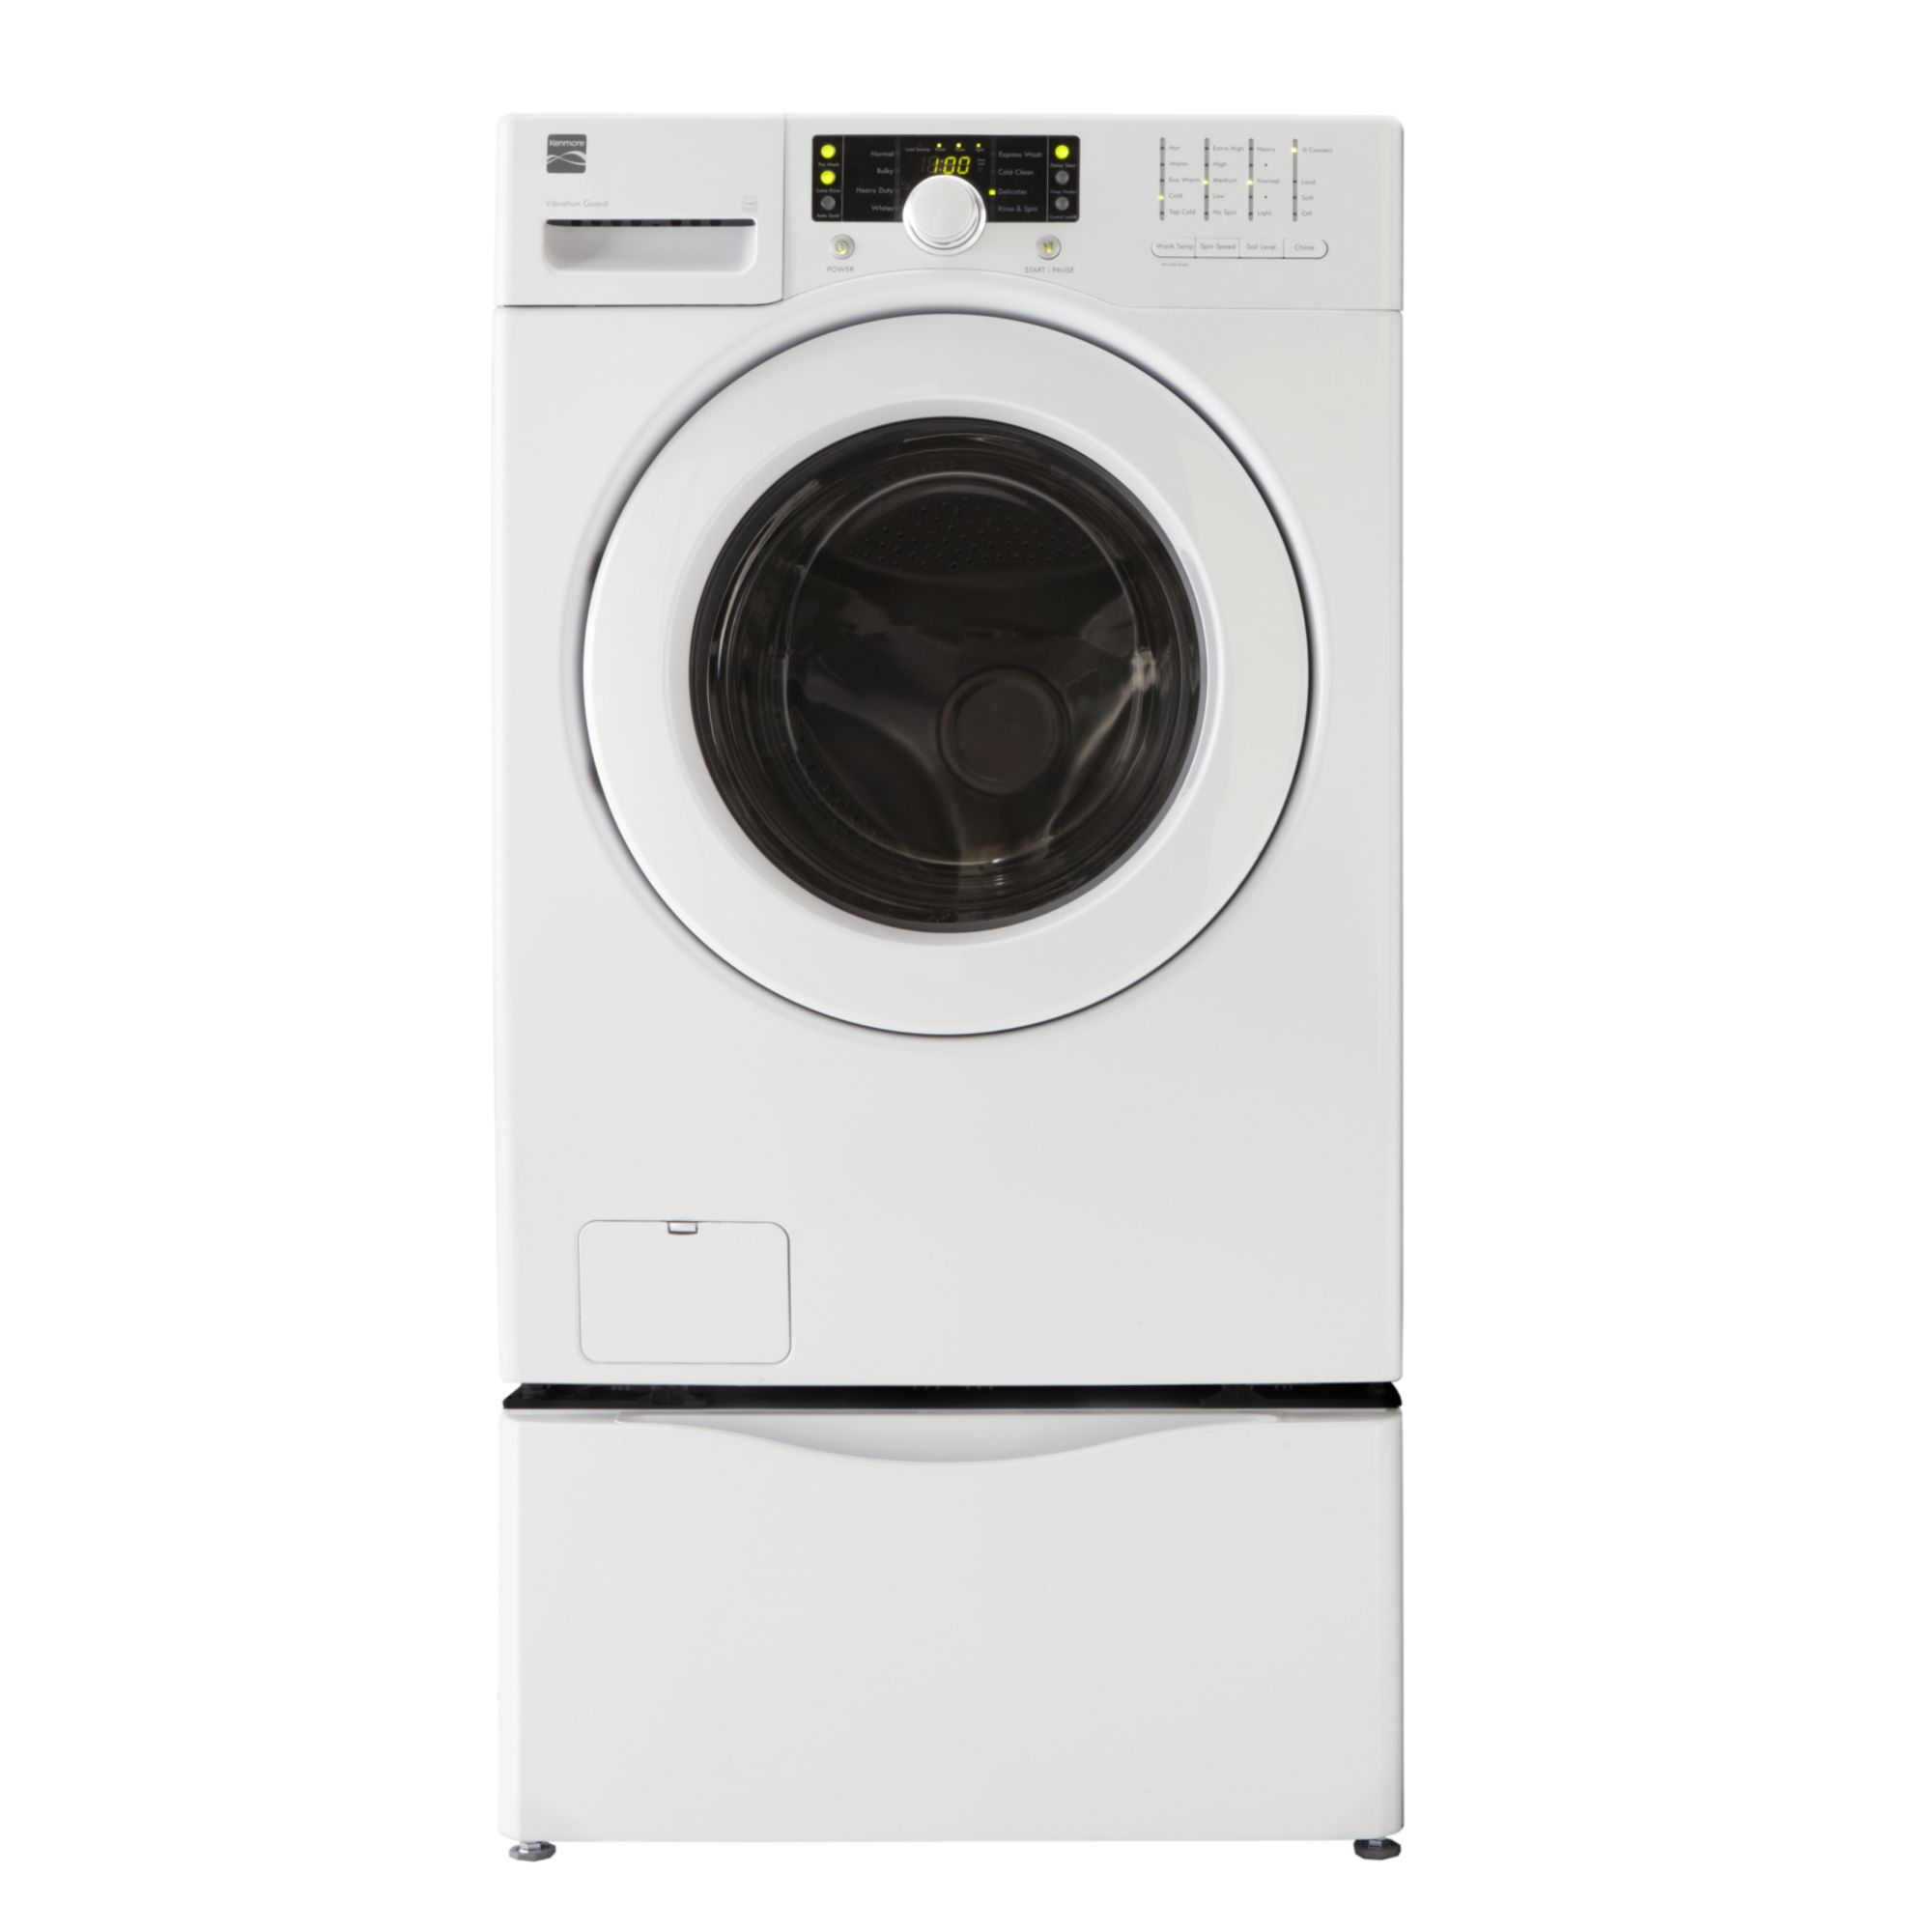 Kenmore 3.6 cu. ft. Front-Load Washer - White